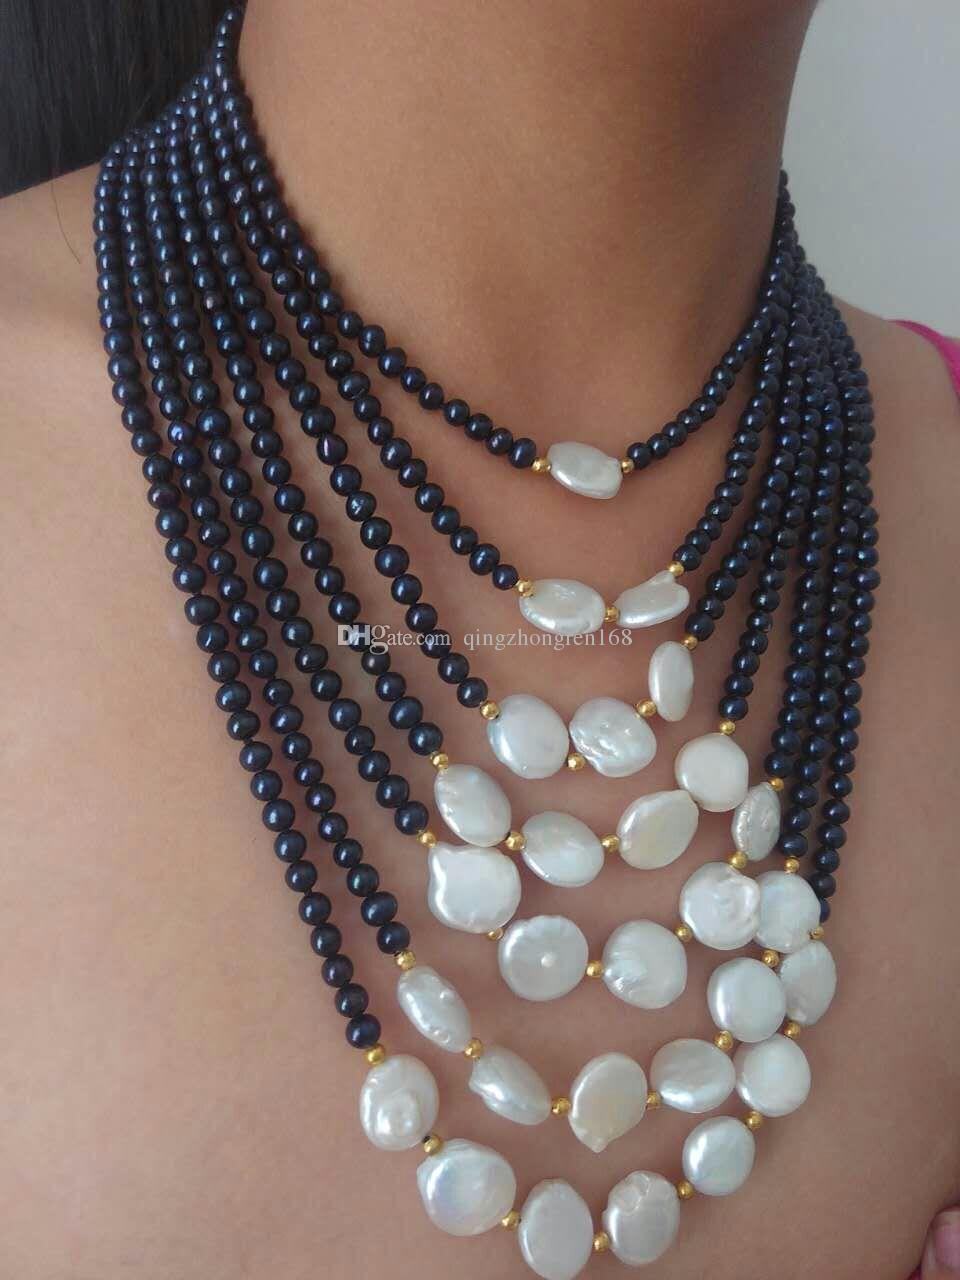 necklaces jewelry necklace handmade allaia with product black fashion by pearls